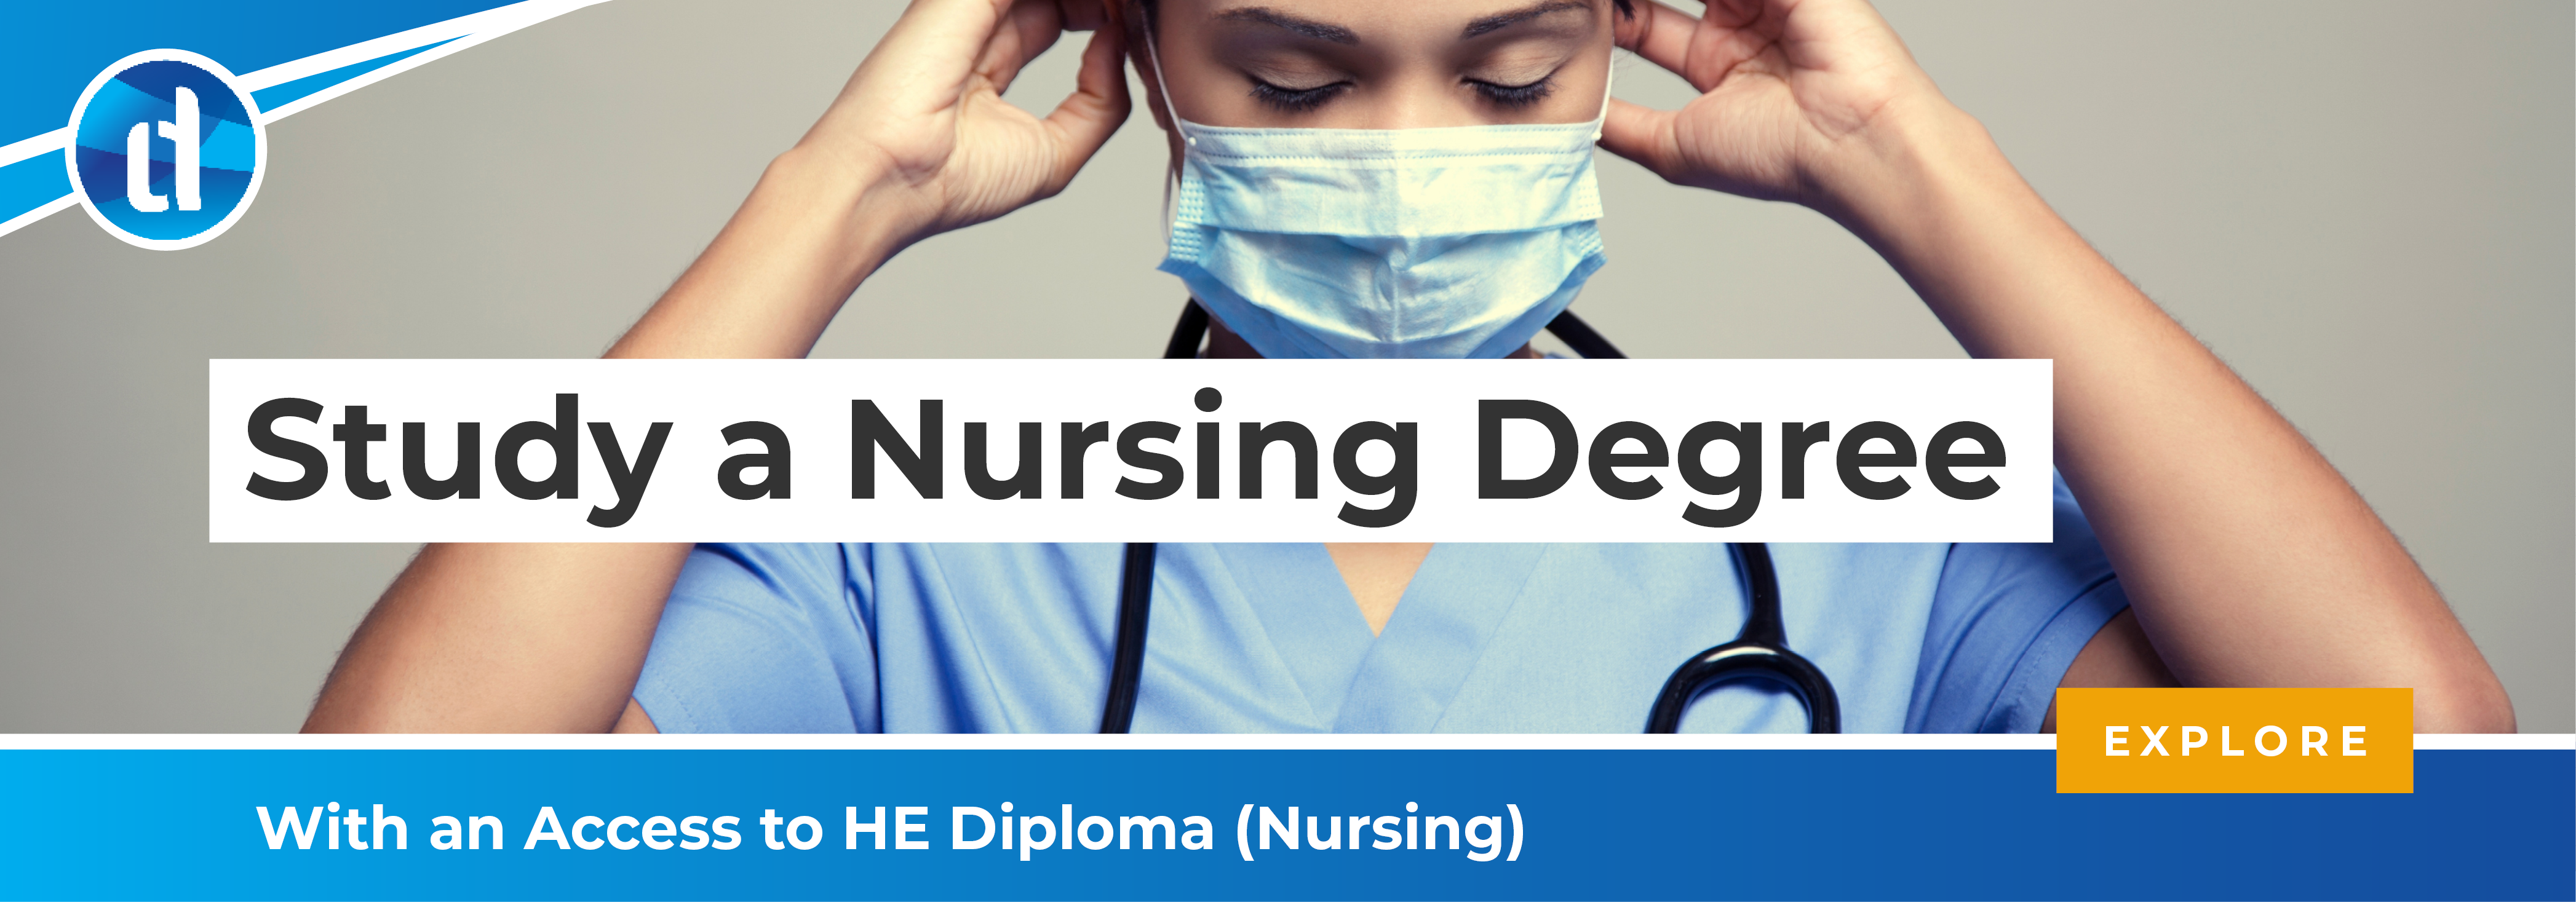 learndirect - study a nursing degree with an Access to HE Diploma